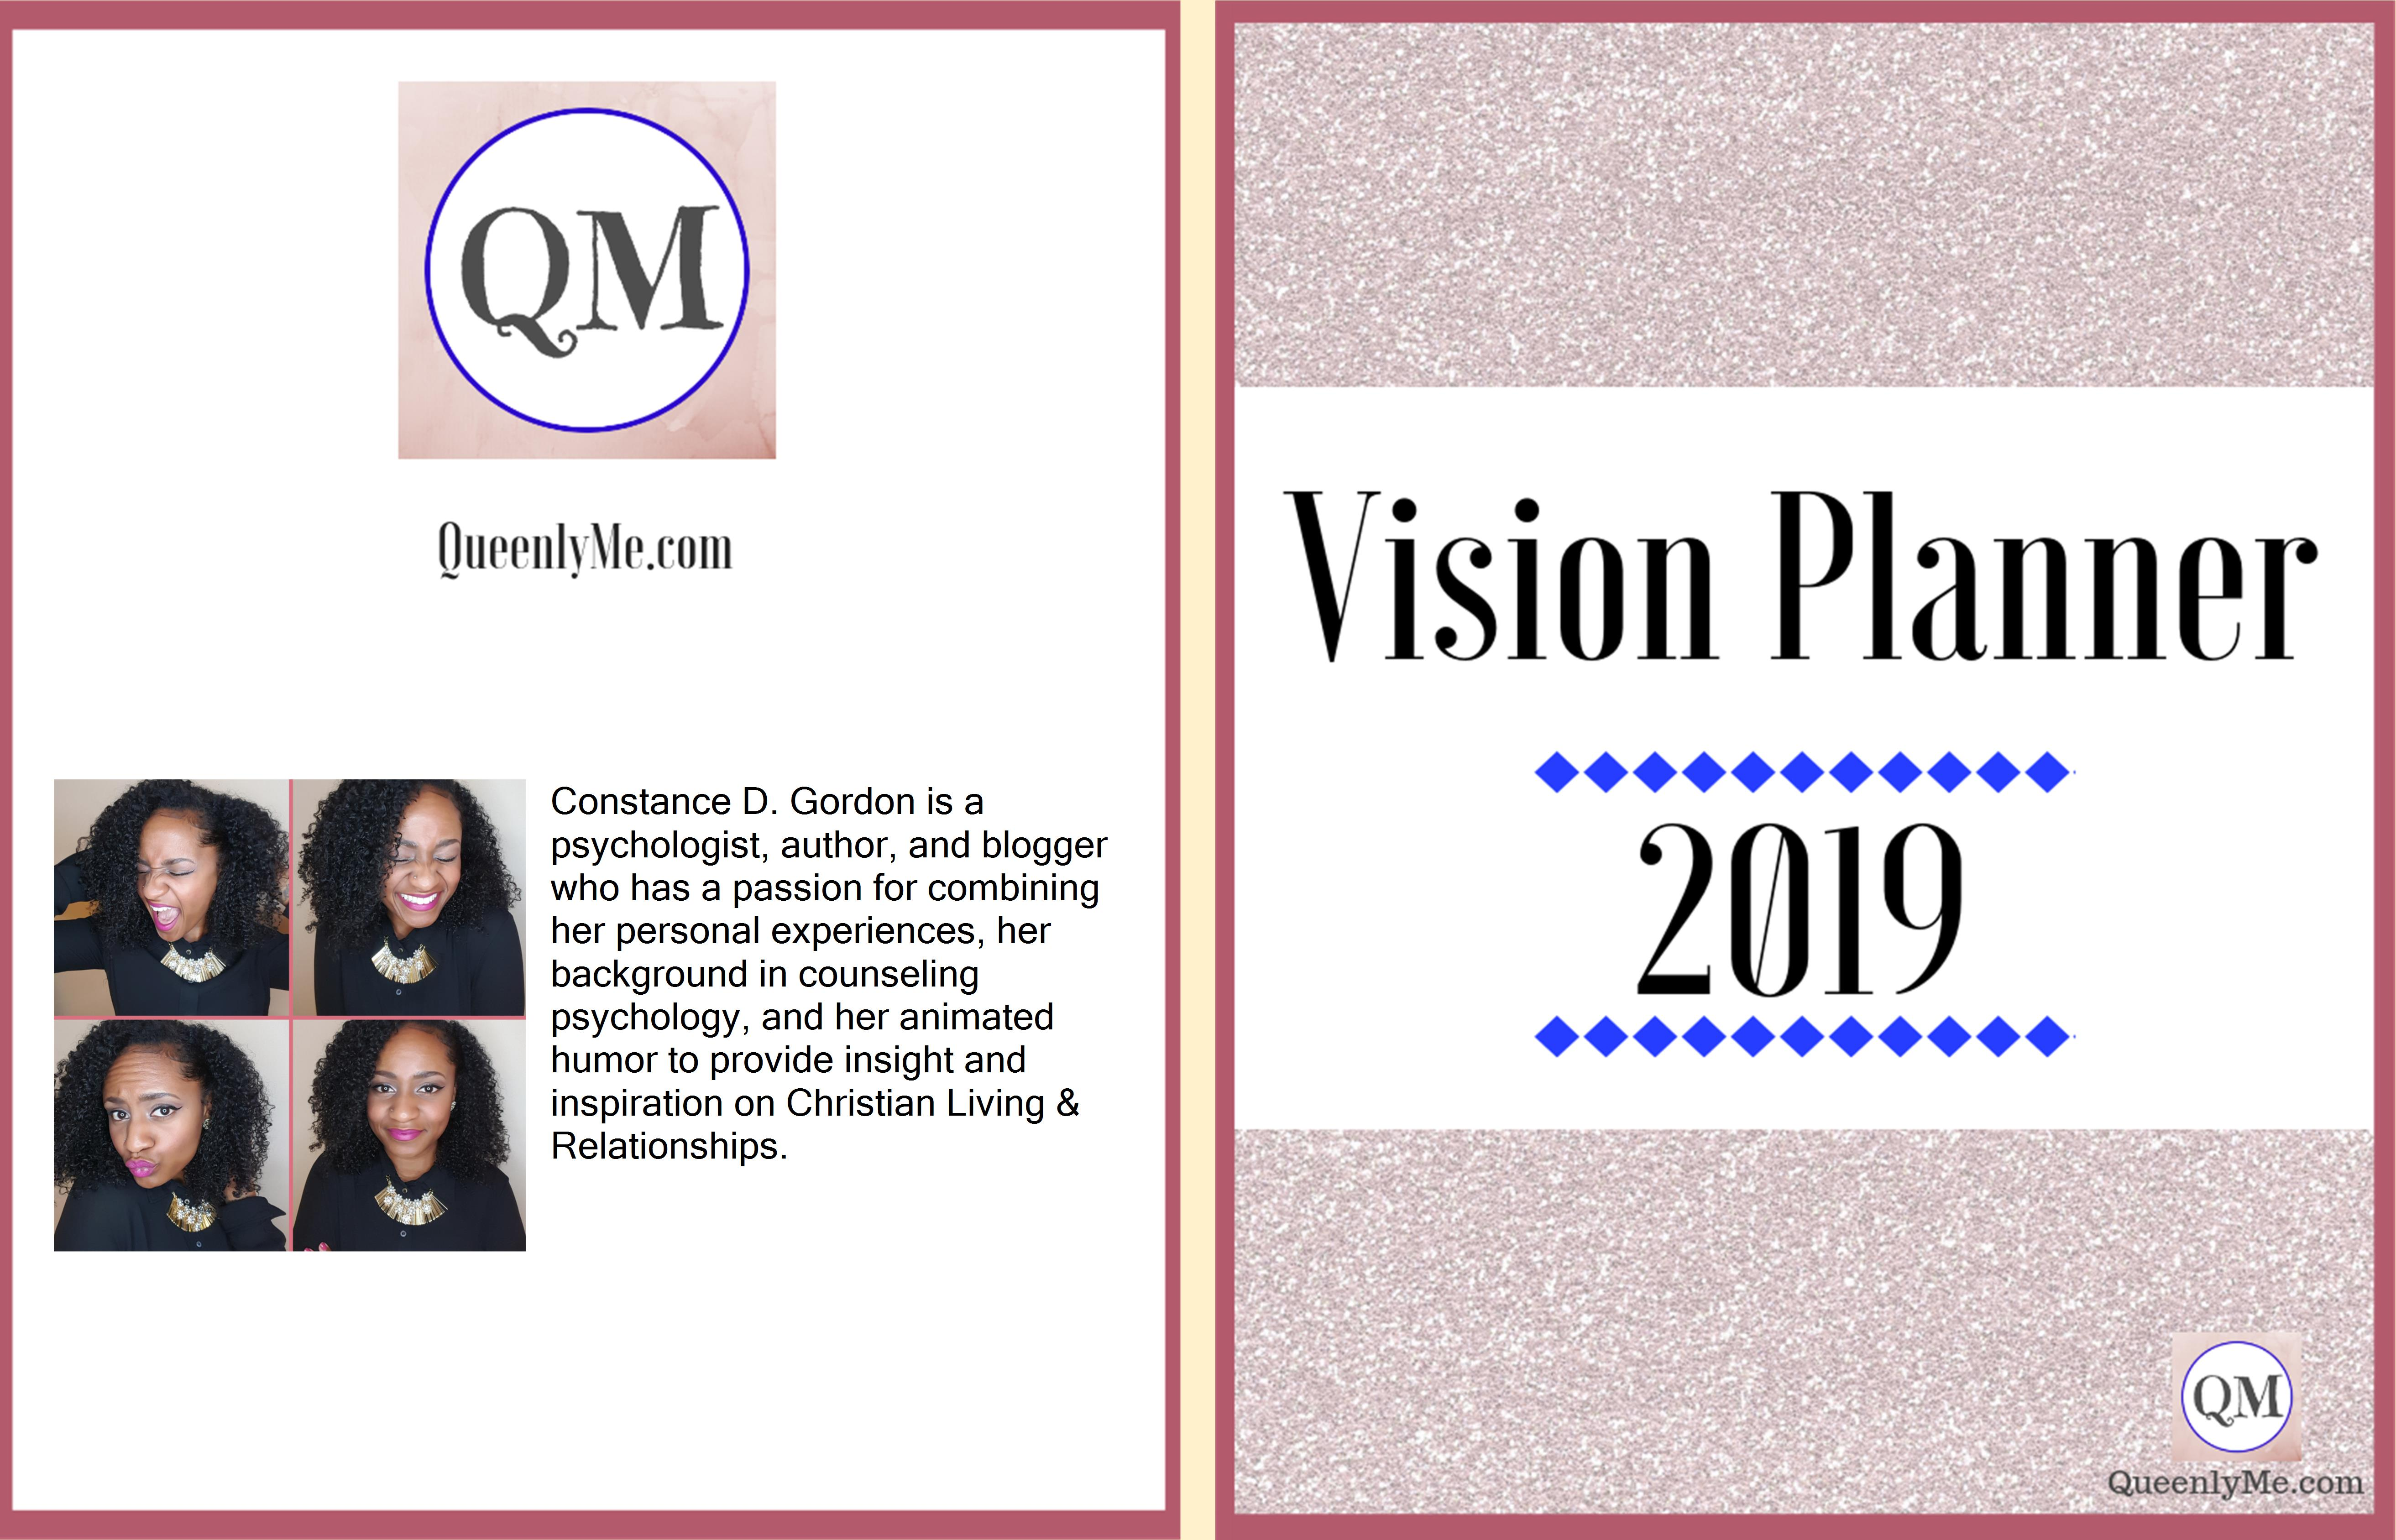 Vision Planner 2019 cover image